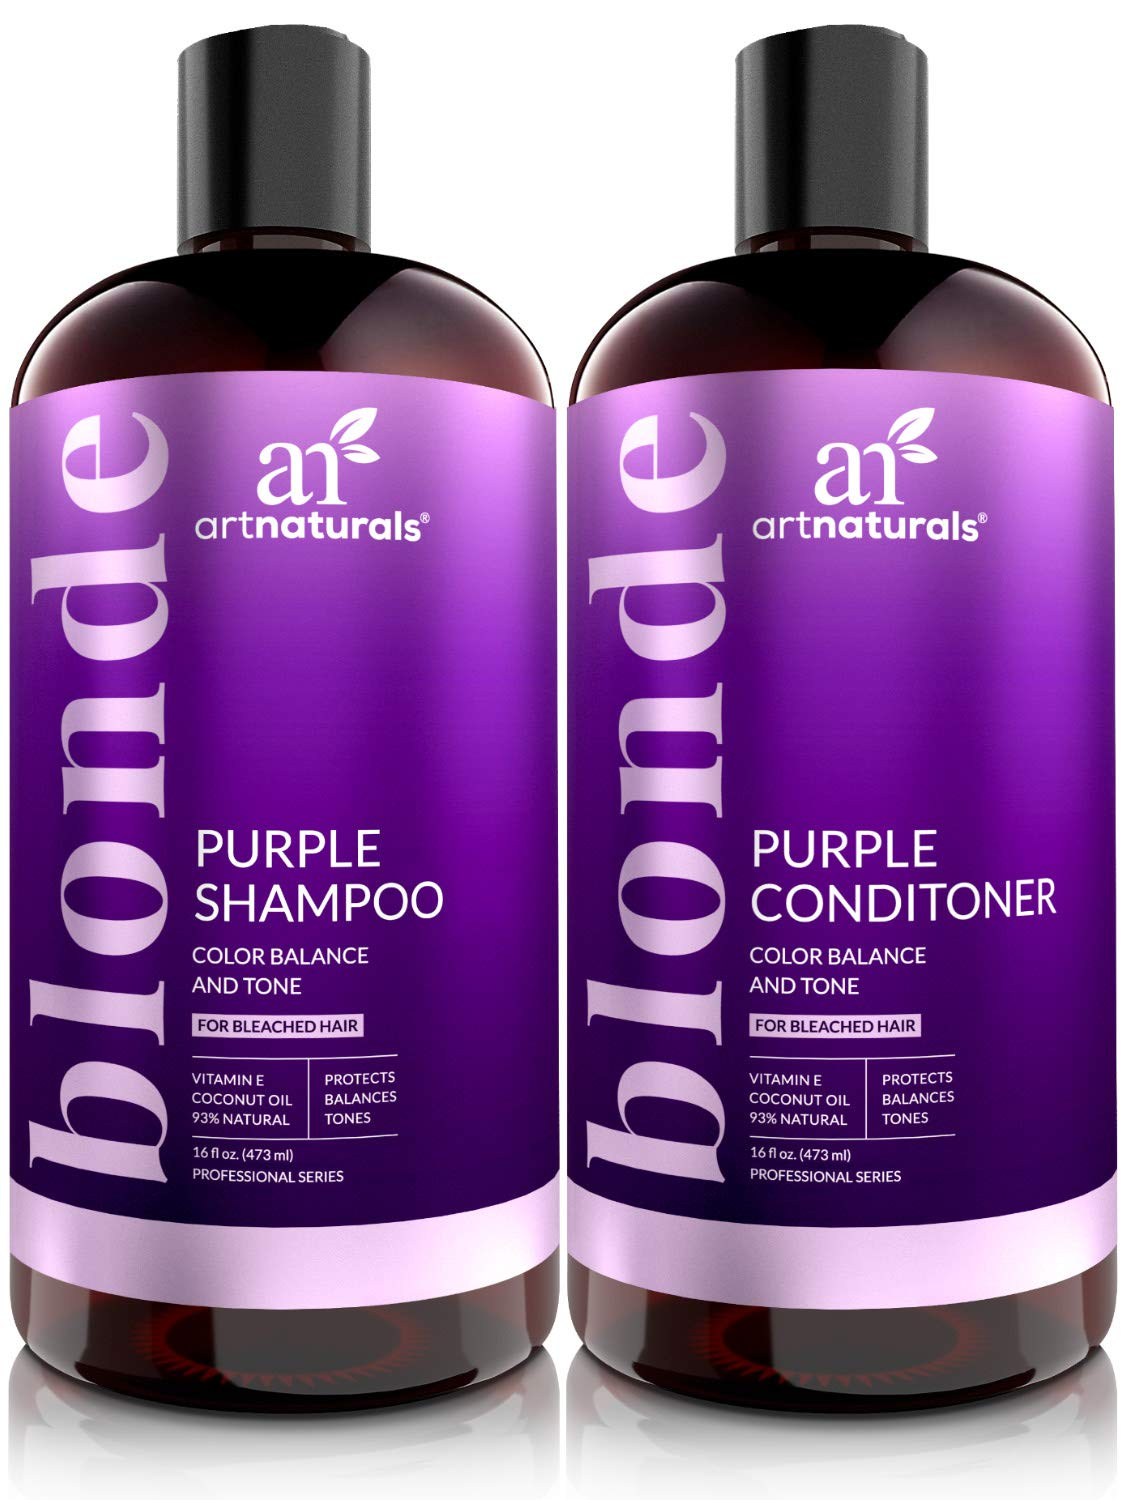 ArtNaturals Purple Shampoo and Conditioner Set - (2 x 16 Fl Oz / 473ml) - Protects, Balances and Tones - Bleached, Color Treated, Silver, Brassy and Blonde Hair - Sulfate Free by ArtNaturals